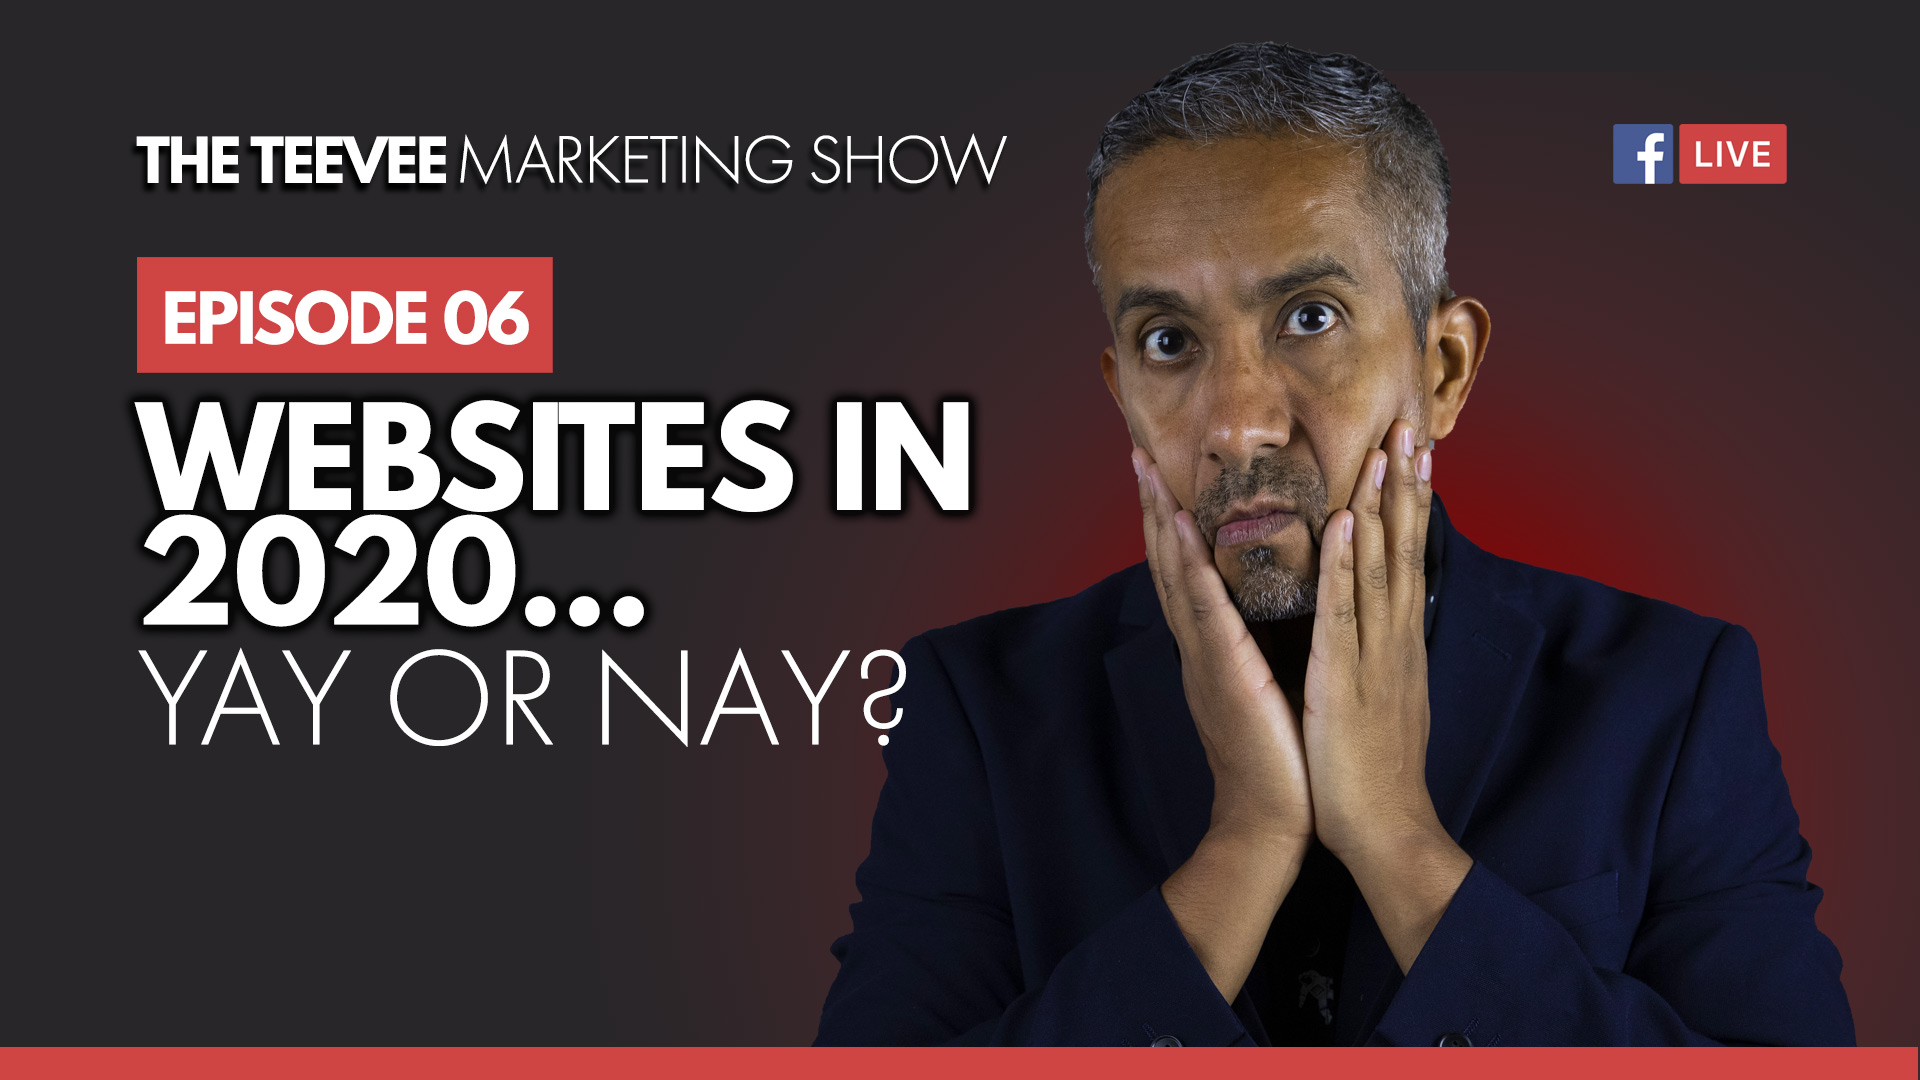 EP006: Websites in 2020… Yay or Nay?